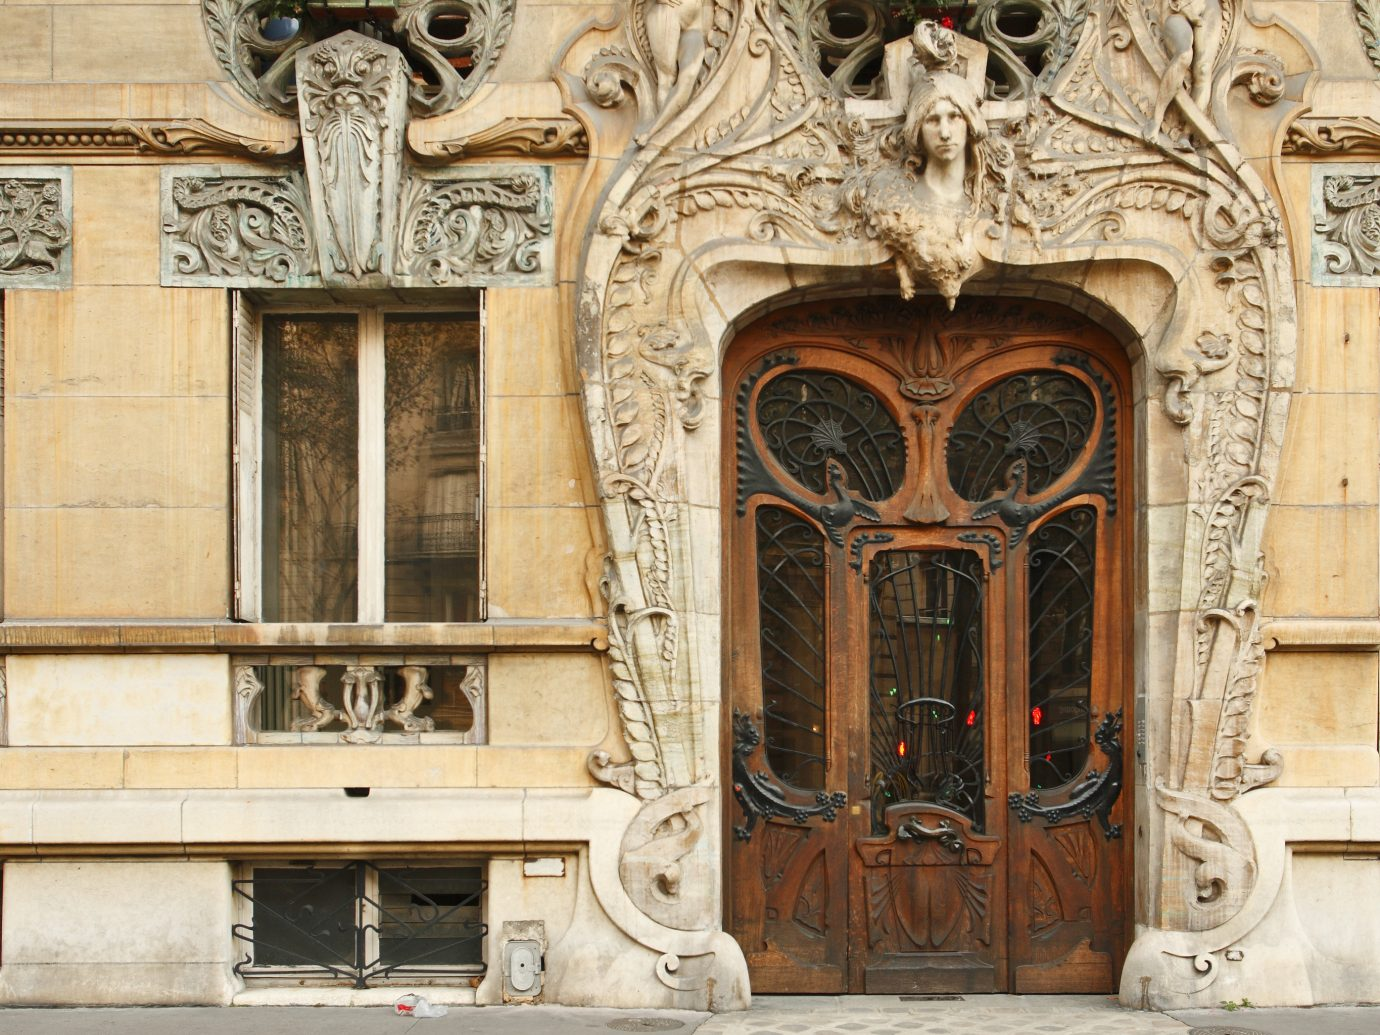 Offbeat outdoor structure building Architecture house facade ancient history palace carving art column door wood window place of worship sculpture temple arch history synagogue Church old stone